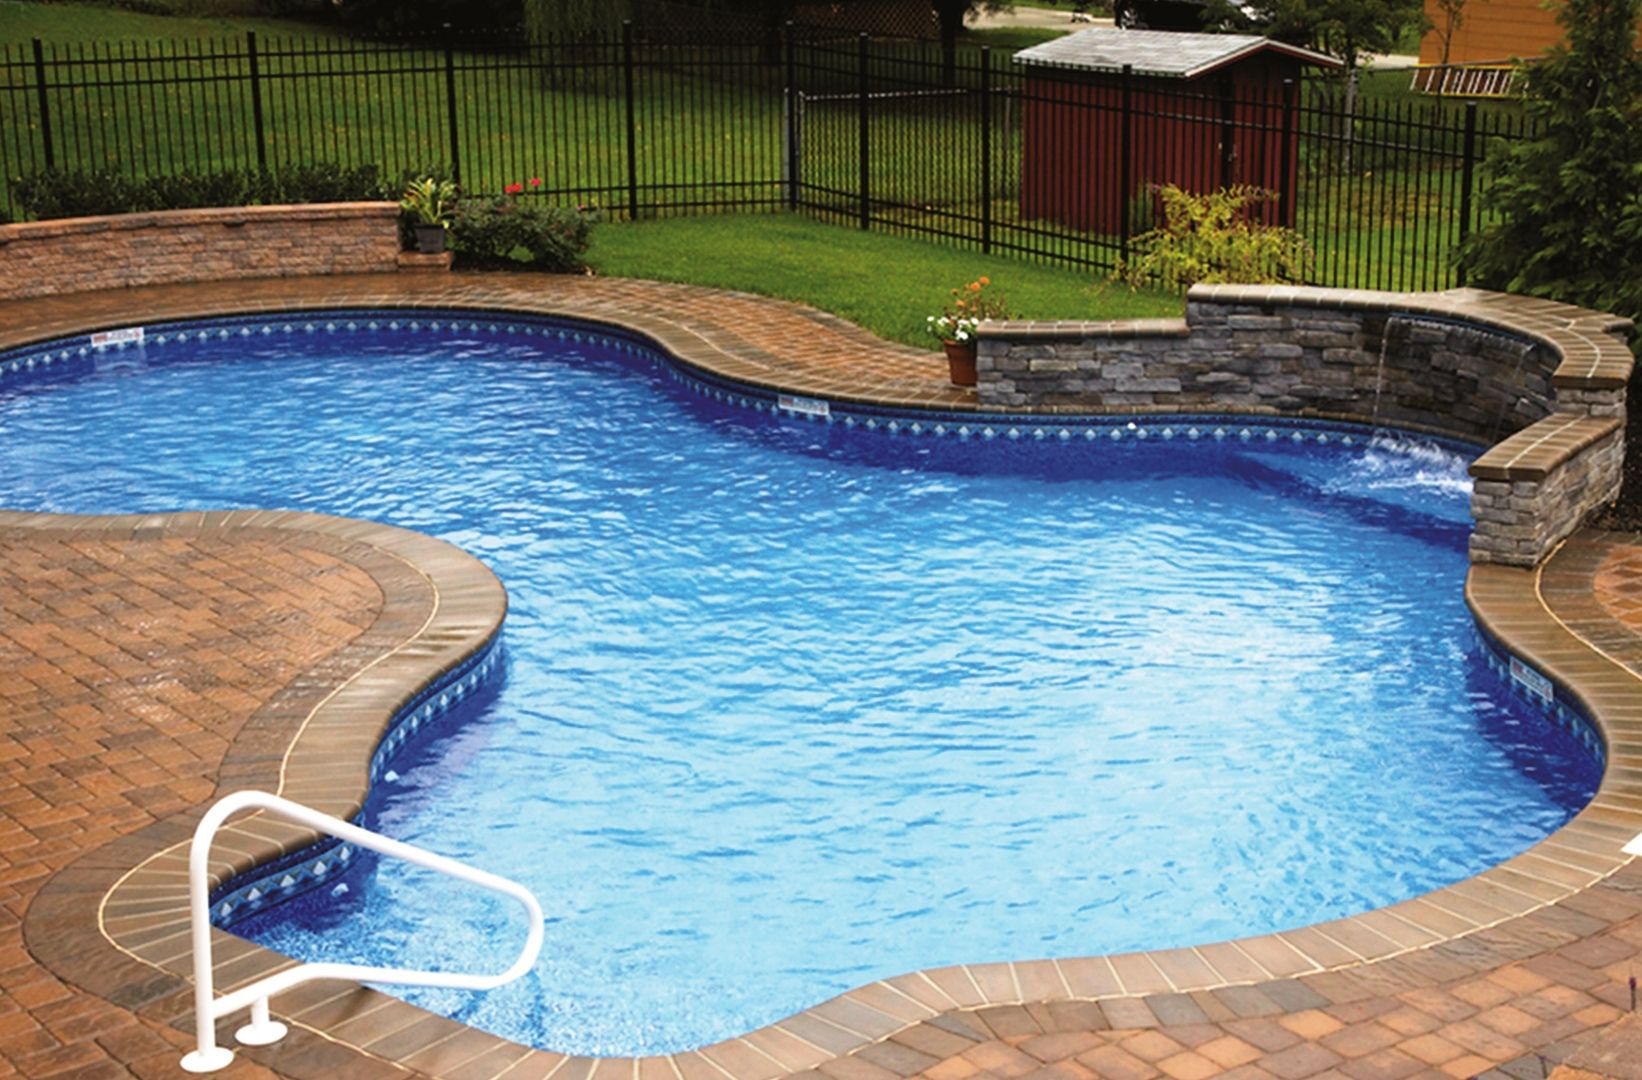 Back yard swimming pool ideas swimming pool design for Pool design pictures